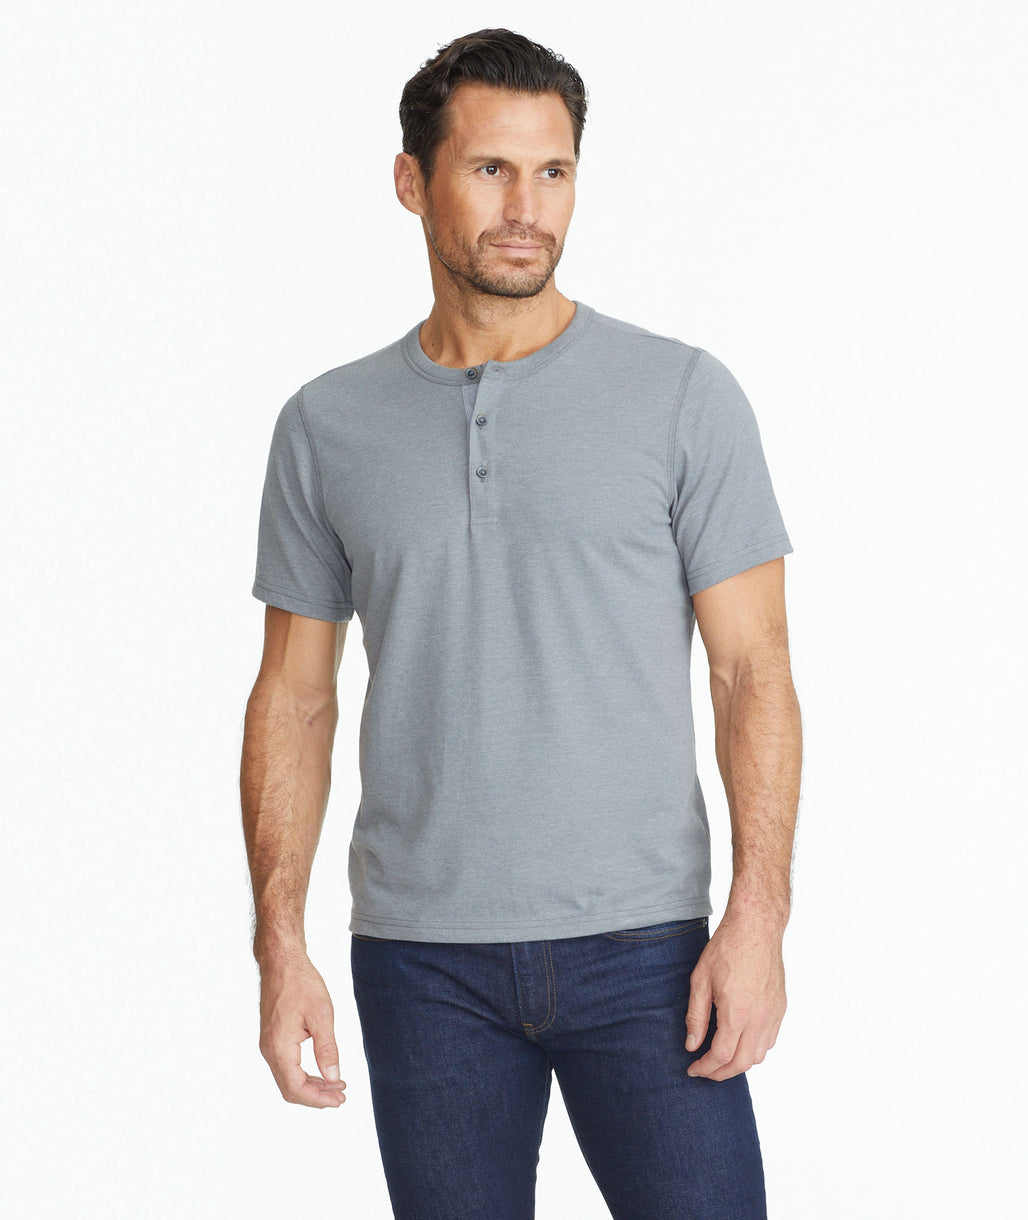 Model wearing a Ultrasoft Short-Sleeve Henley